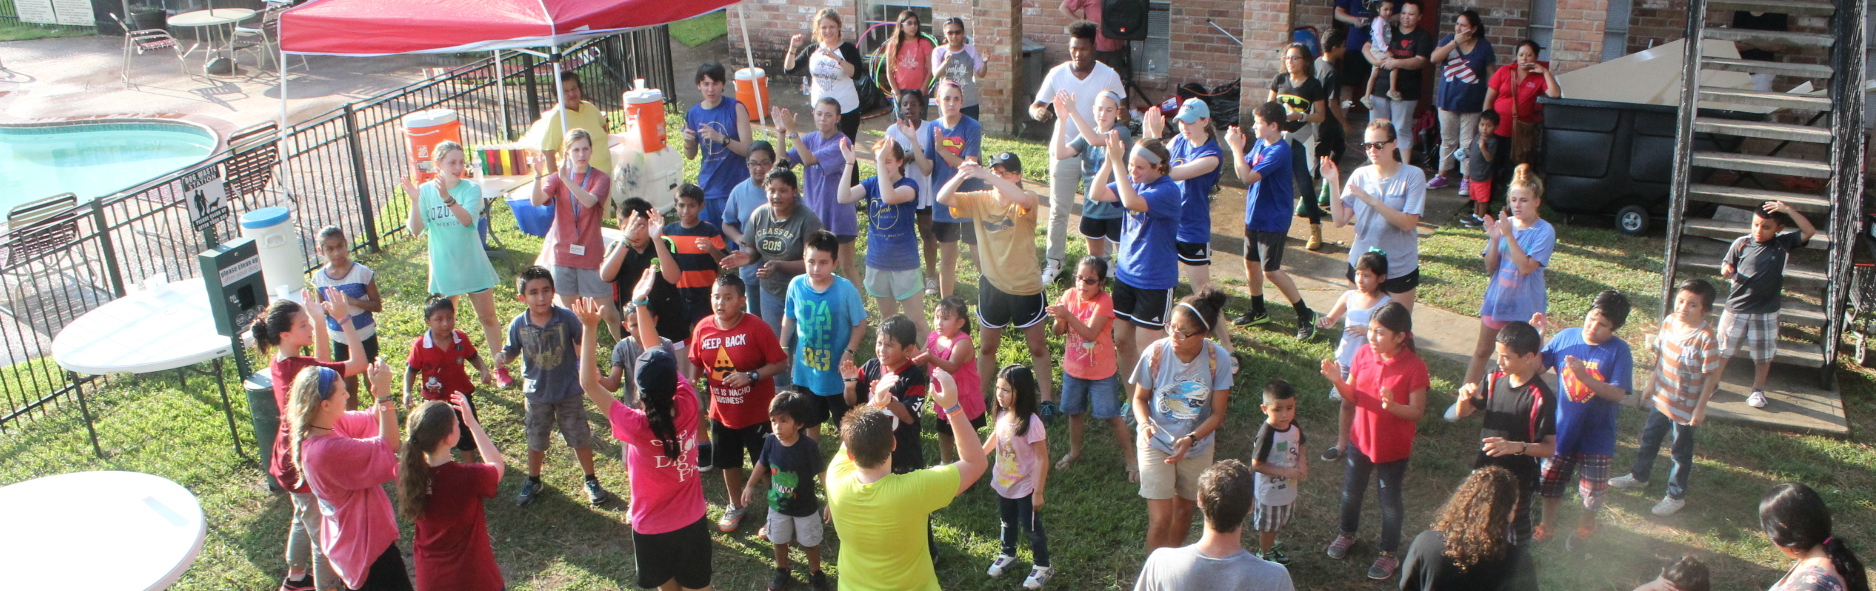 Sharing the joy of christ with children in an apartment complex.